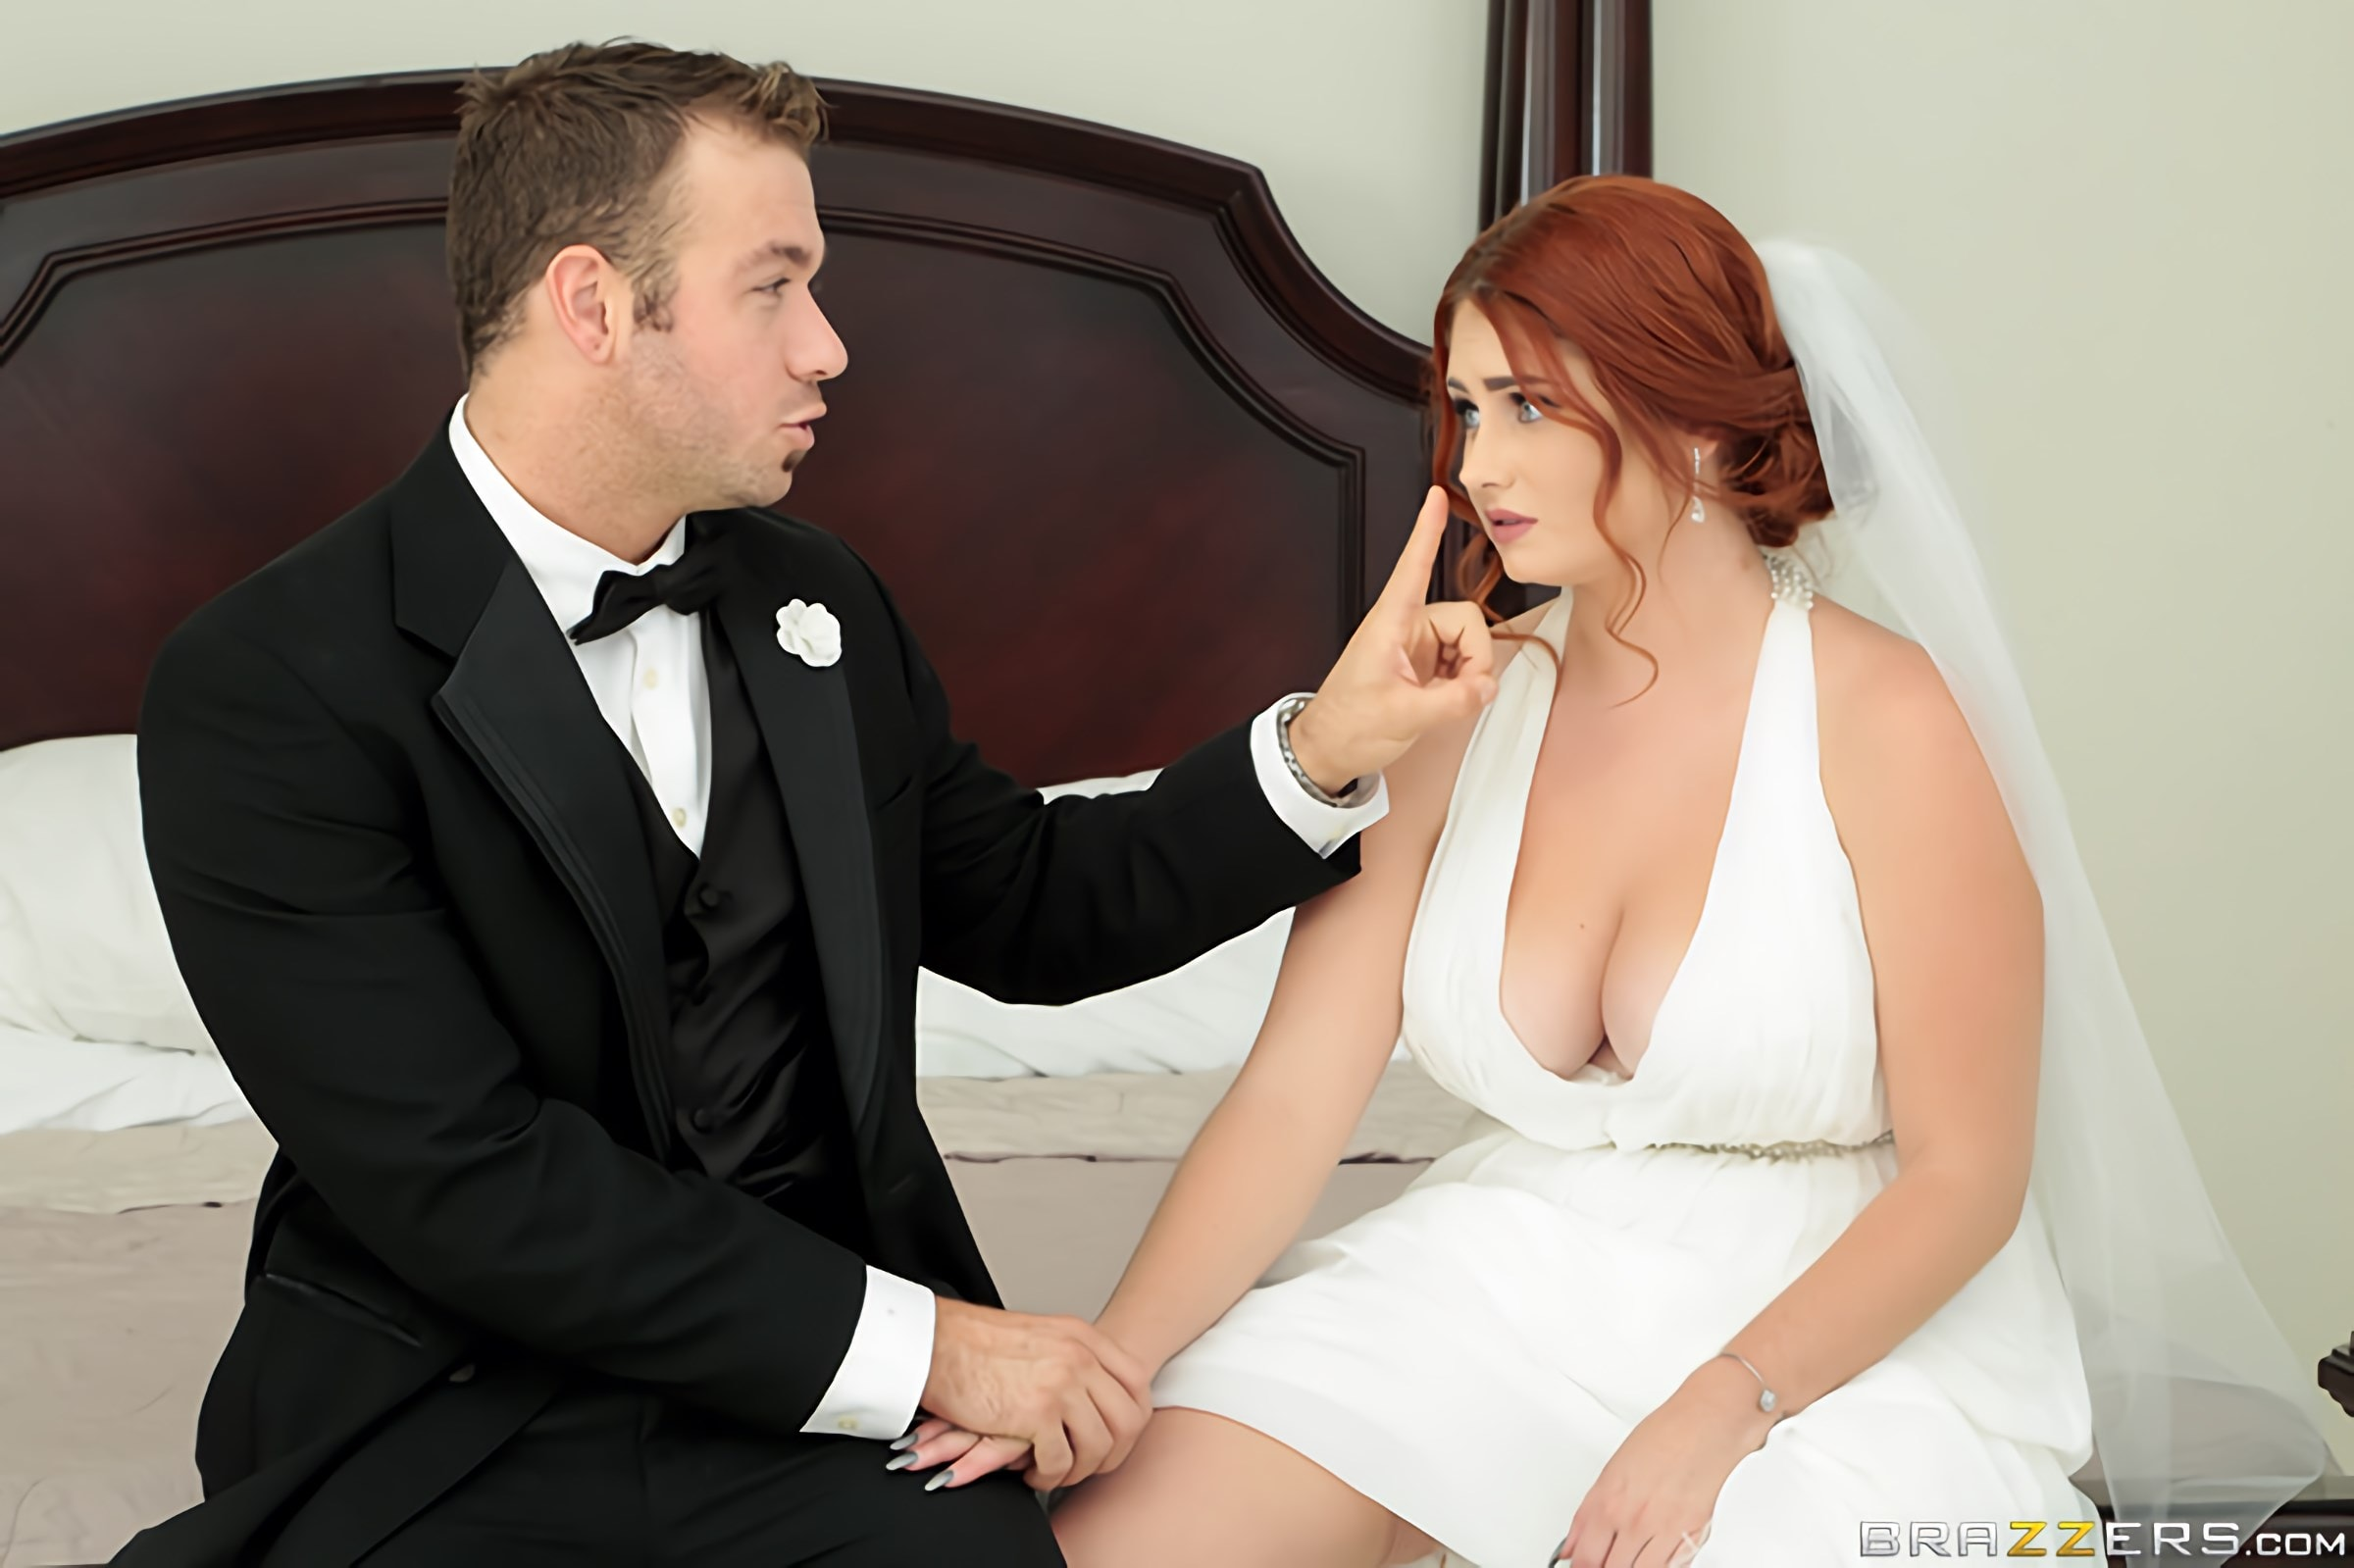 Brazzers 'Dirty Bride' starring Lennox Luxe (Photo 1)